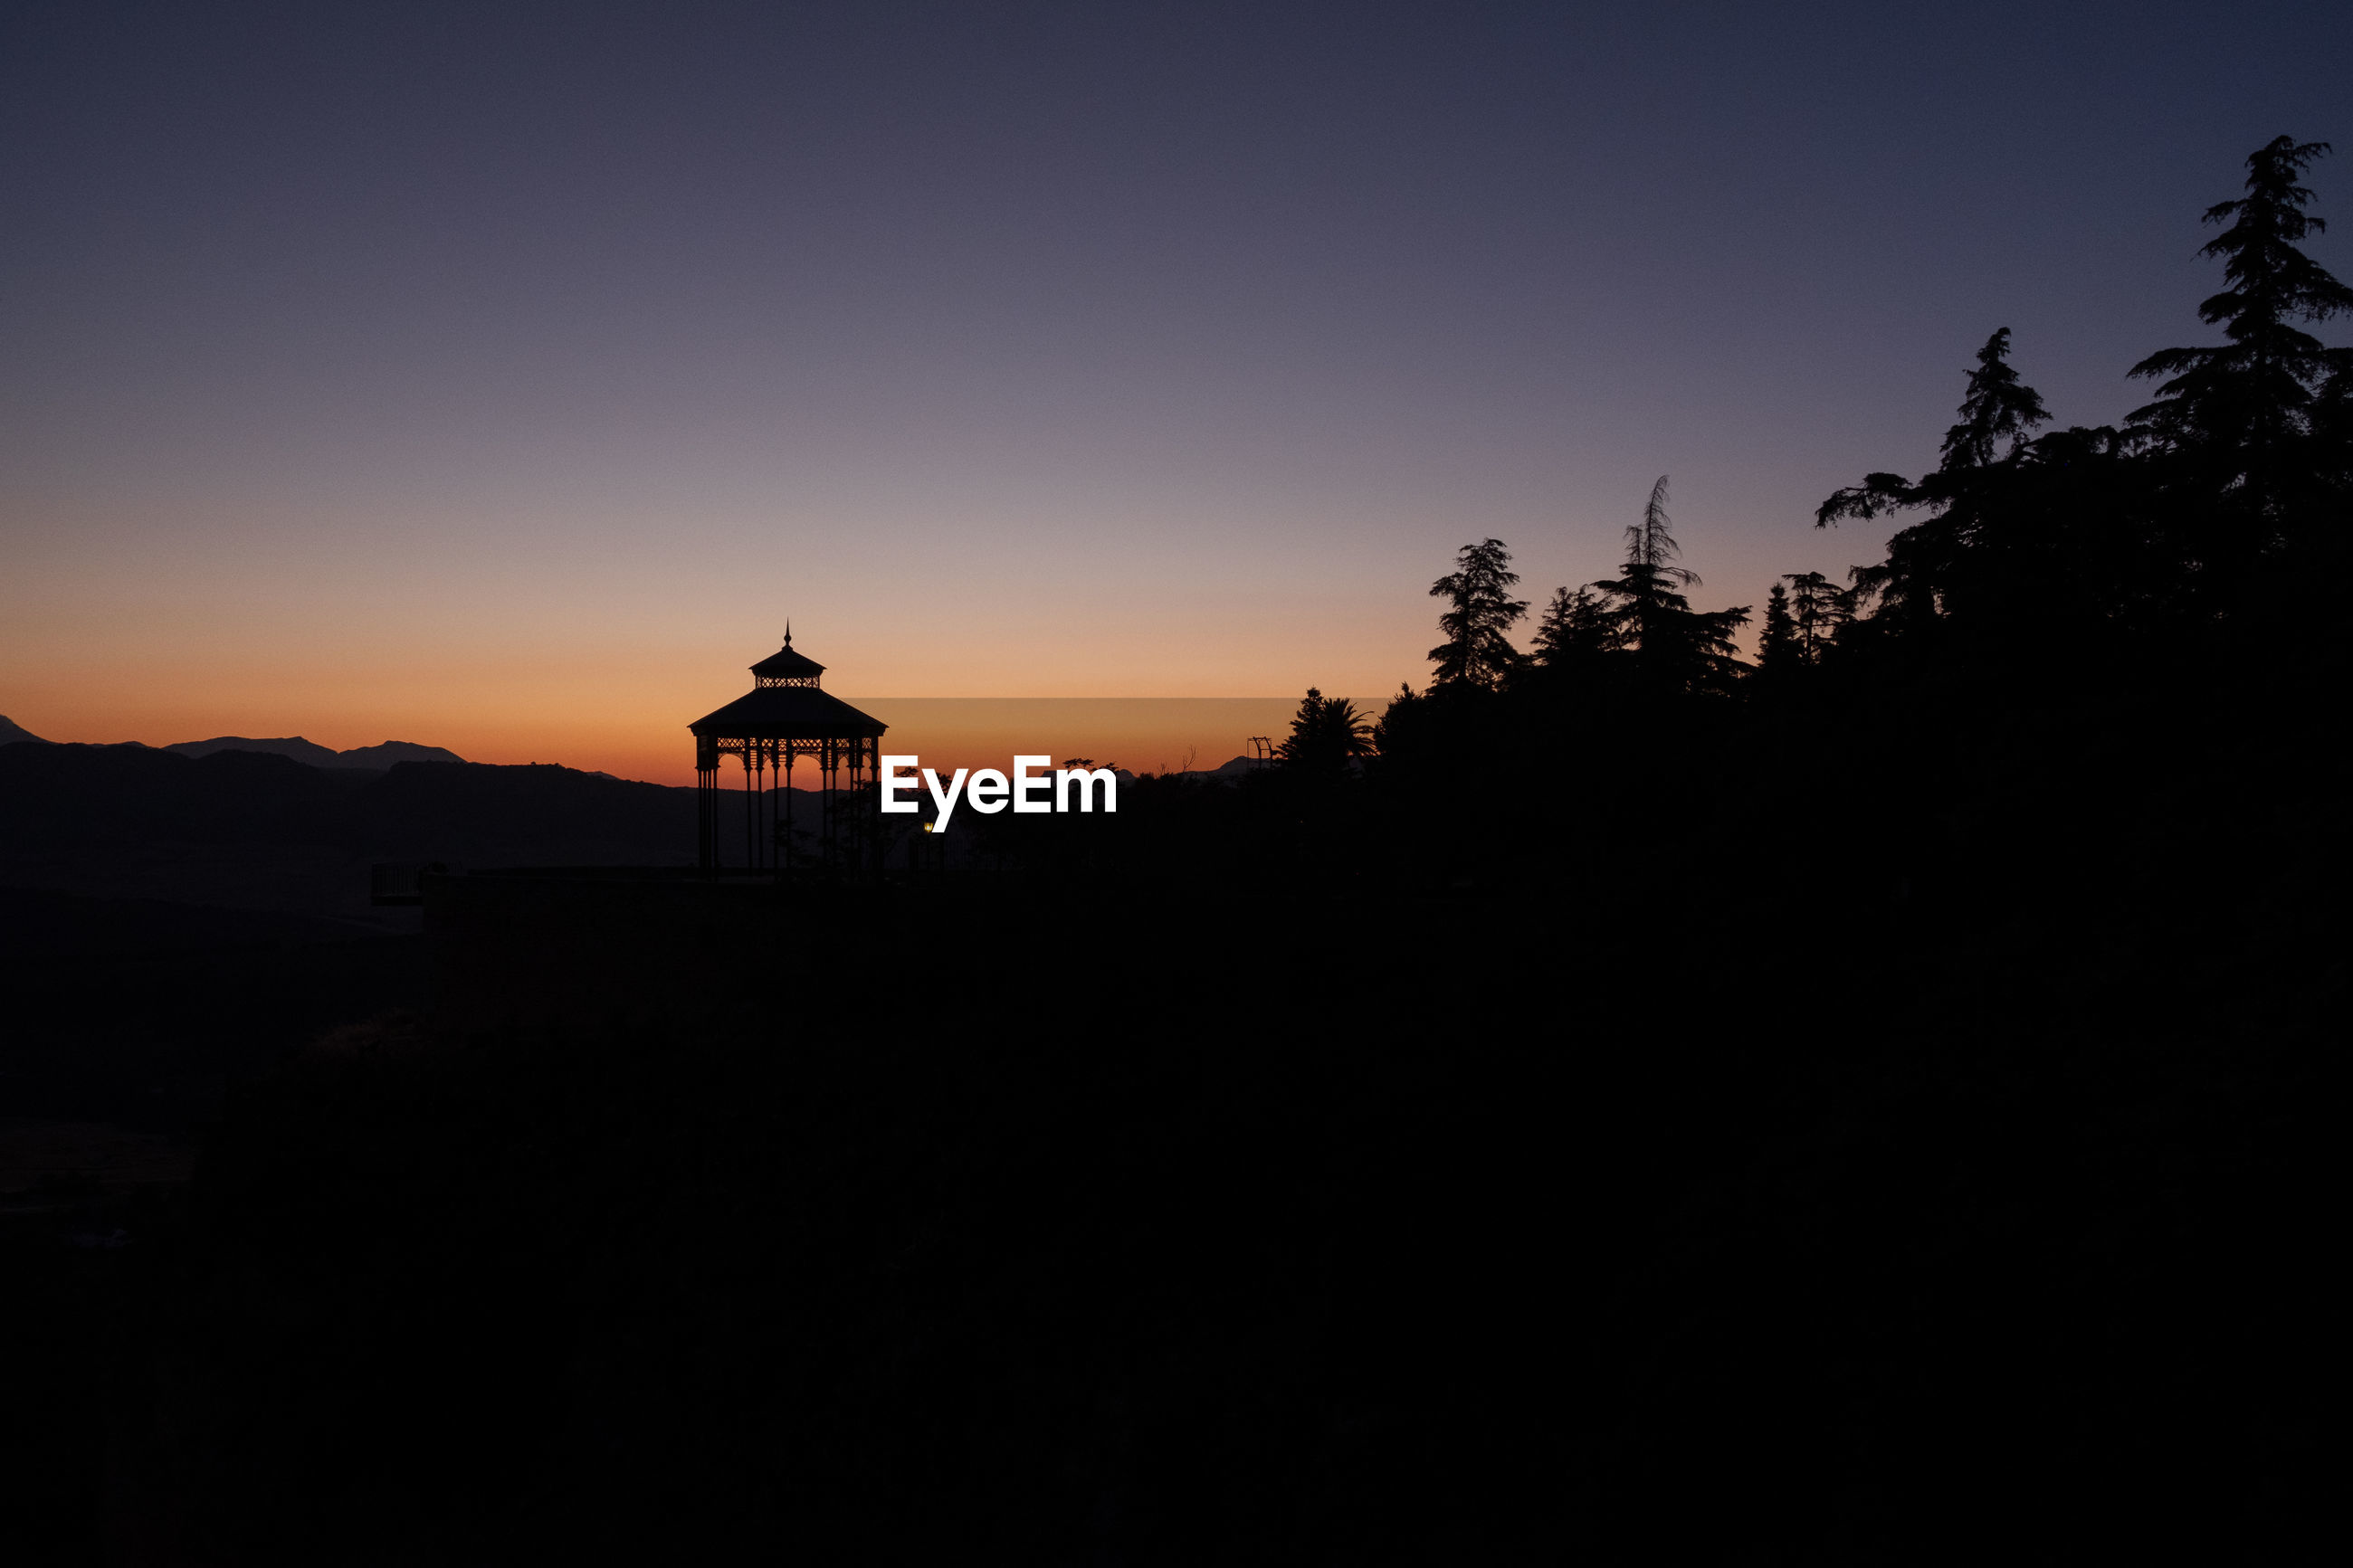 SILHOUETTE TEMPLE AGAINST CLEAR SKY AT SUNSET